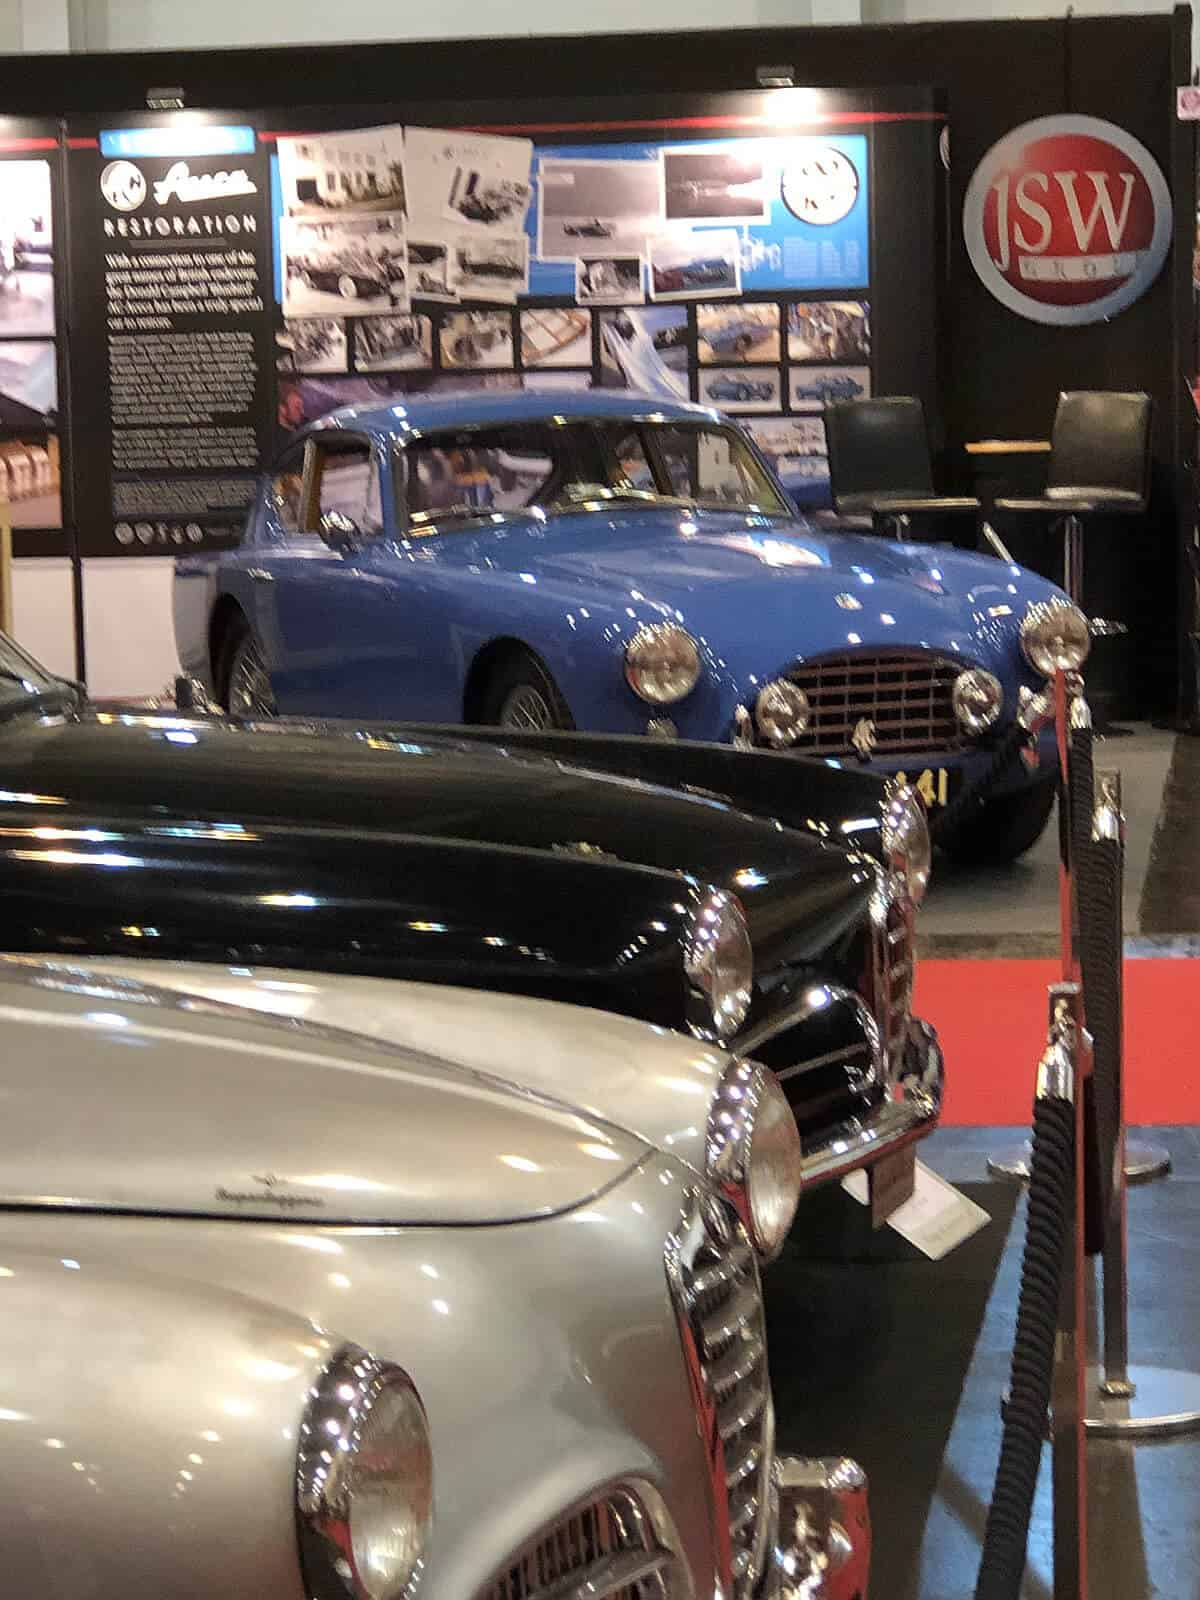 Front view AC Bluebird Aceca VPL441 on the JSW stand at 2019 Techno Classica Car Show in Essen